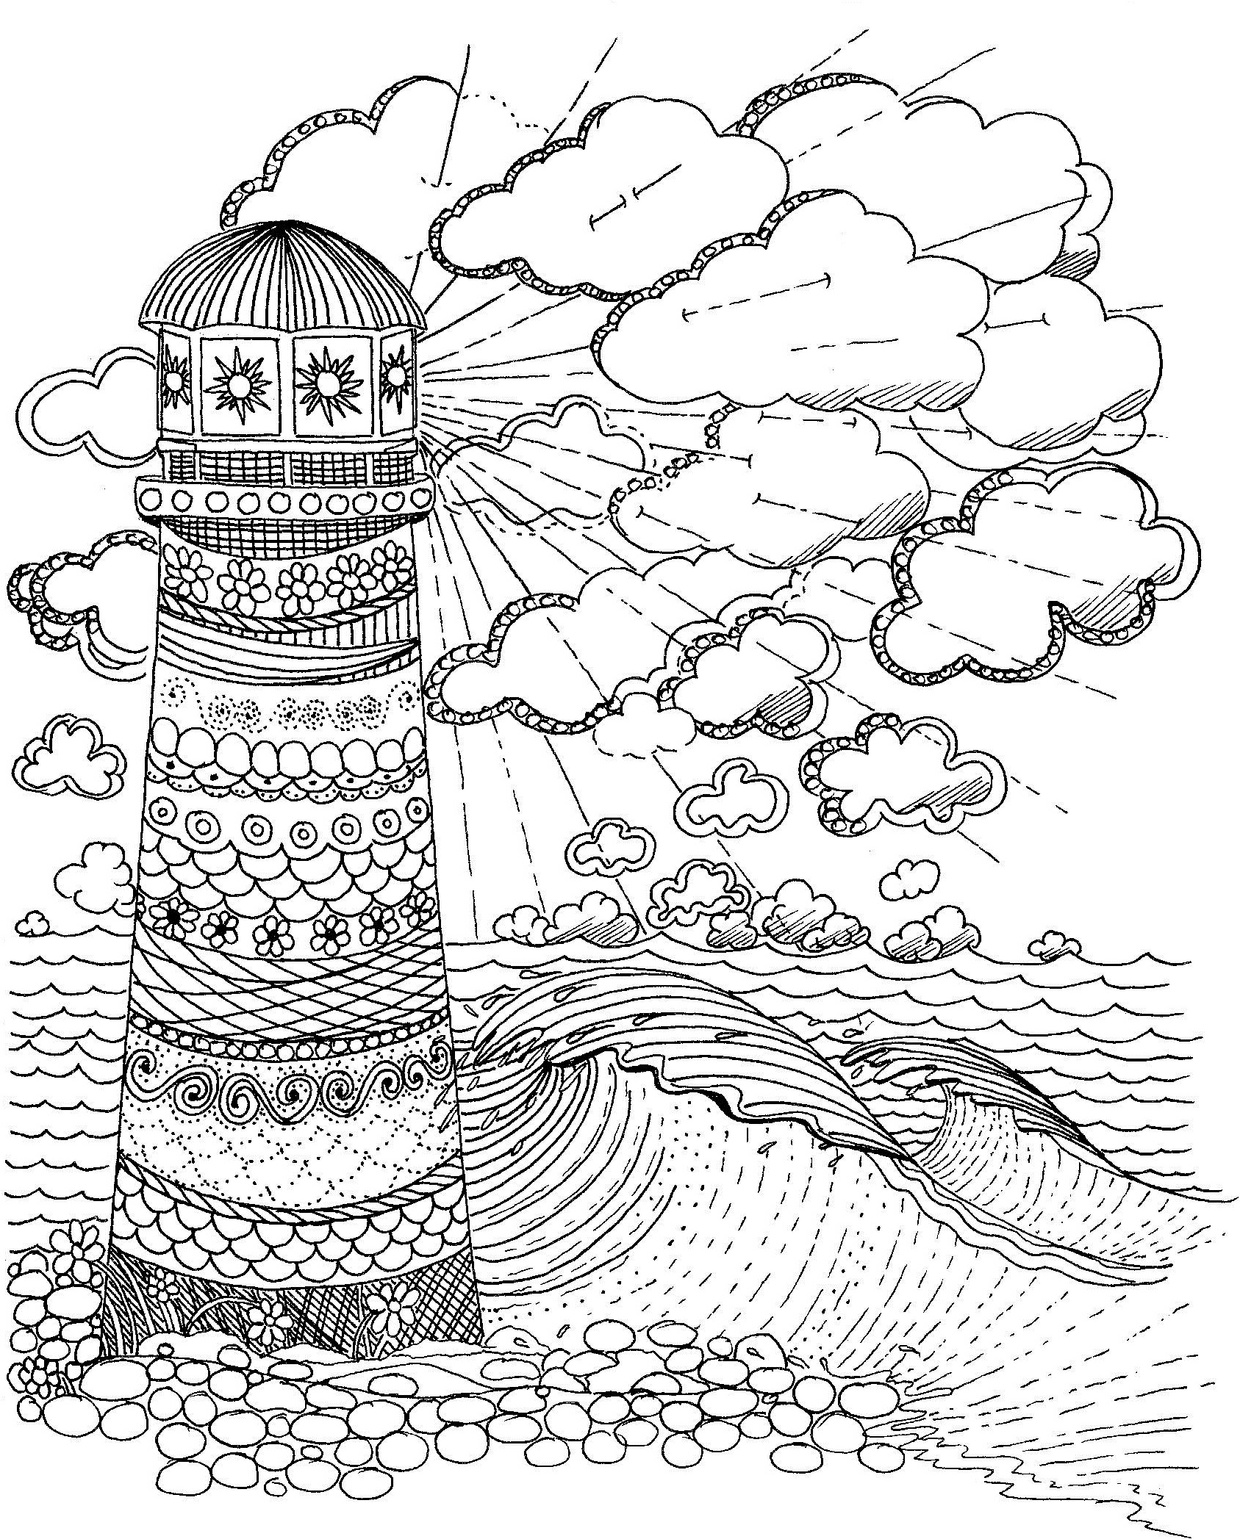 Lighthouse Coloring Page southernskystudio